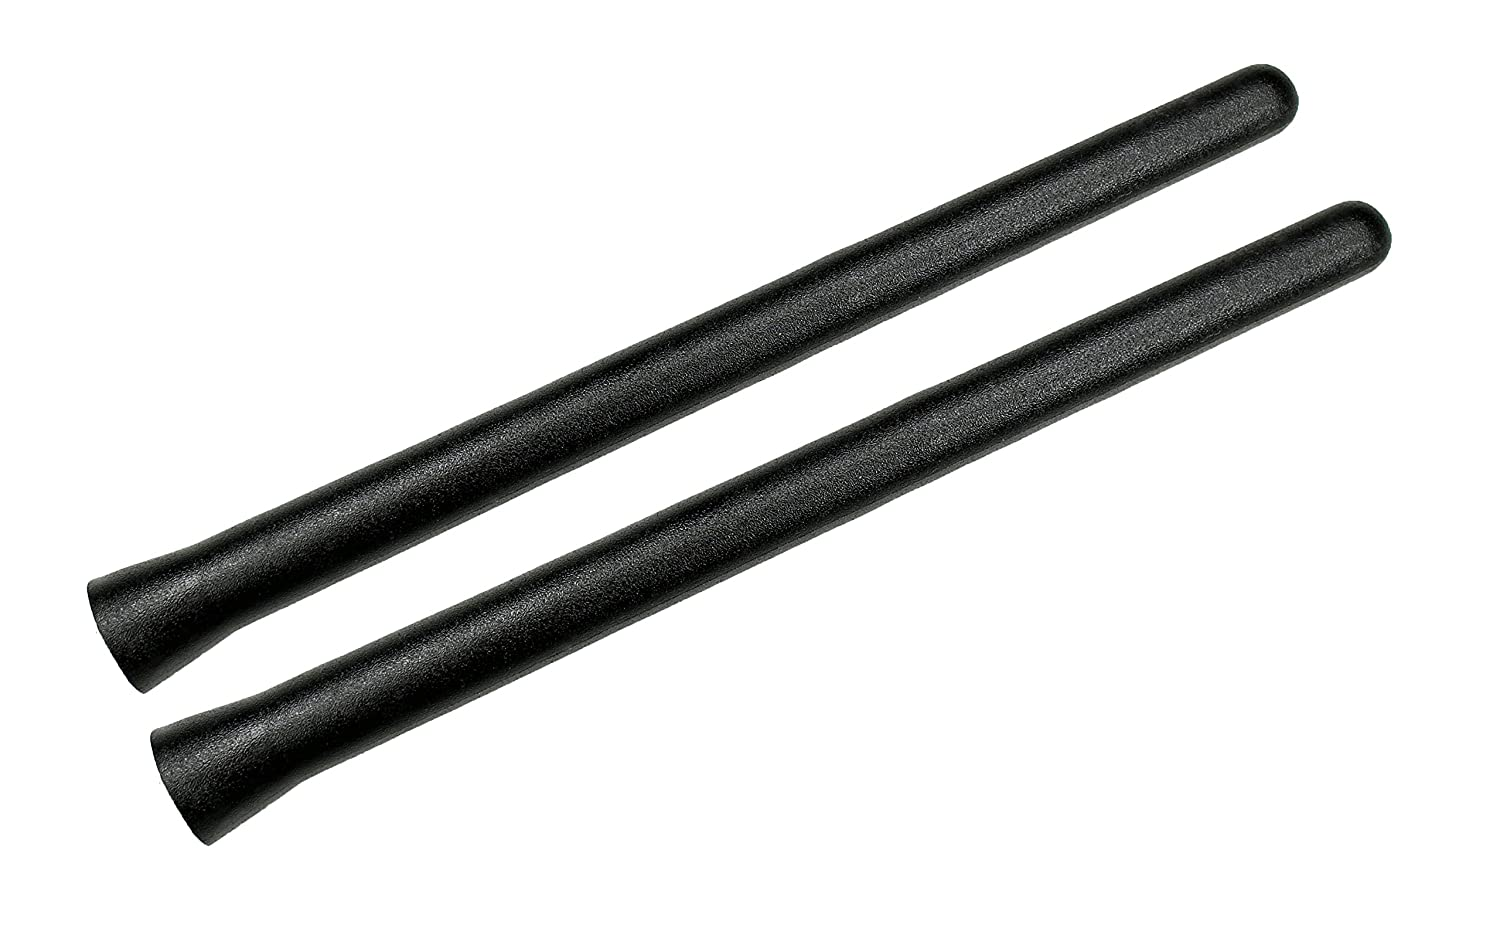 Short Rubber Antenna 2013-2014 AntennaMastsRus The Original 6 3/4 INCH is Compatible with Harley Davidson CVO Road King FLHRSE5 / FLHRSE6 - 2 Pack Reception Guaranteed German Engineered